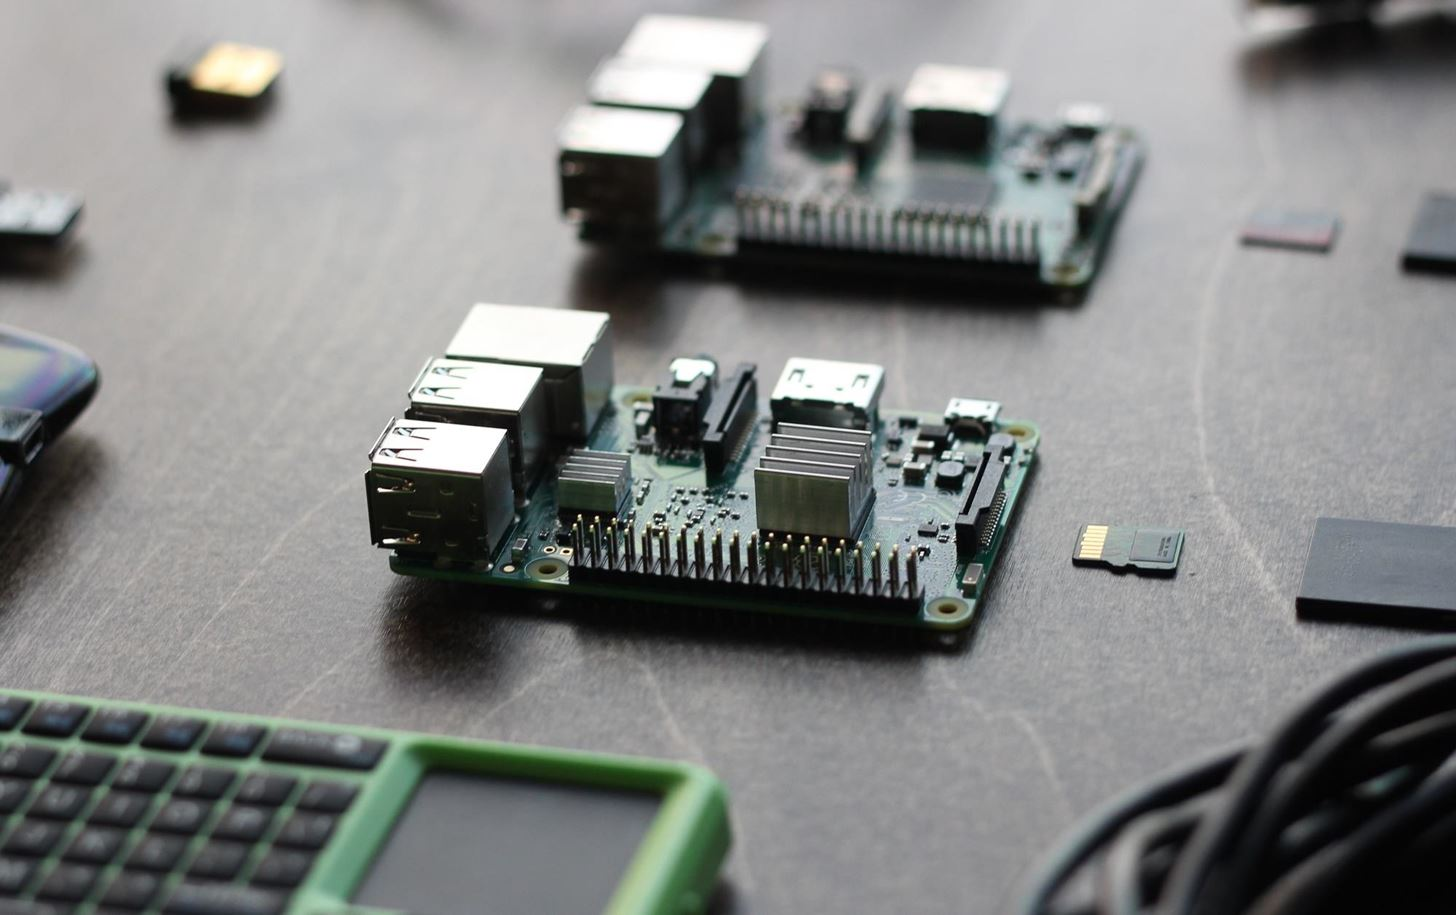 How to Set Up a Headless Raspberry Pi Hacking Platform